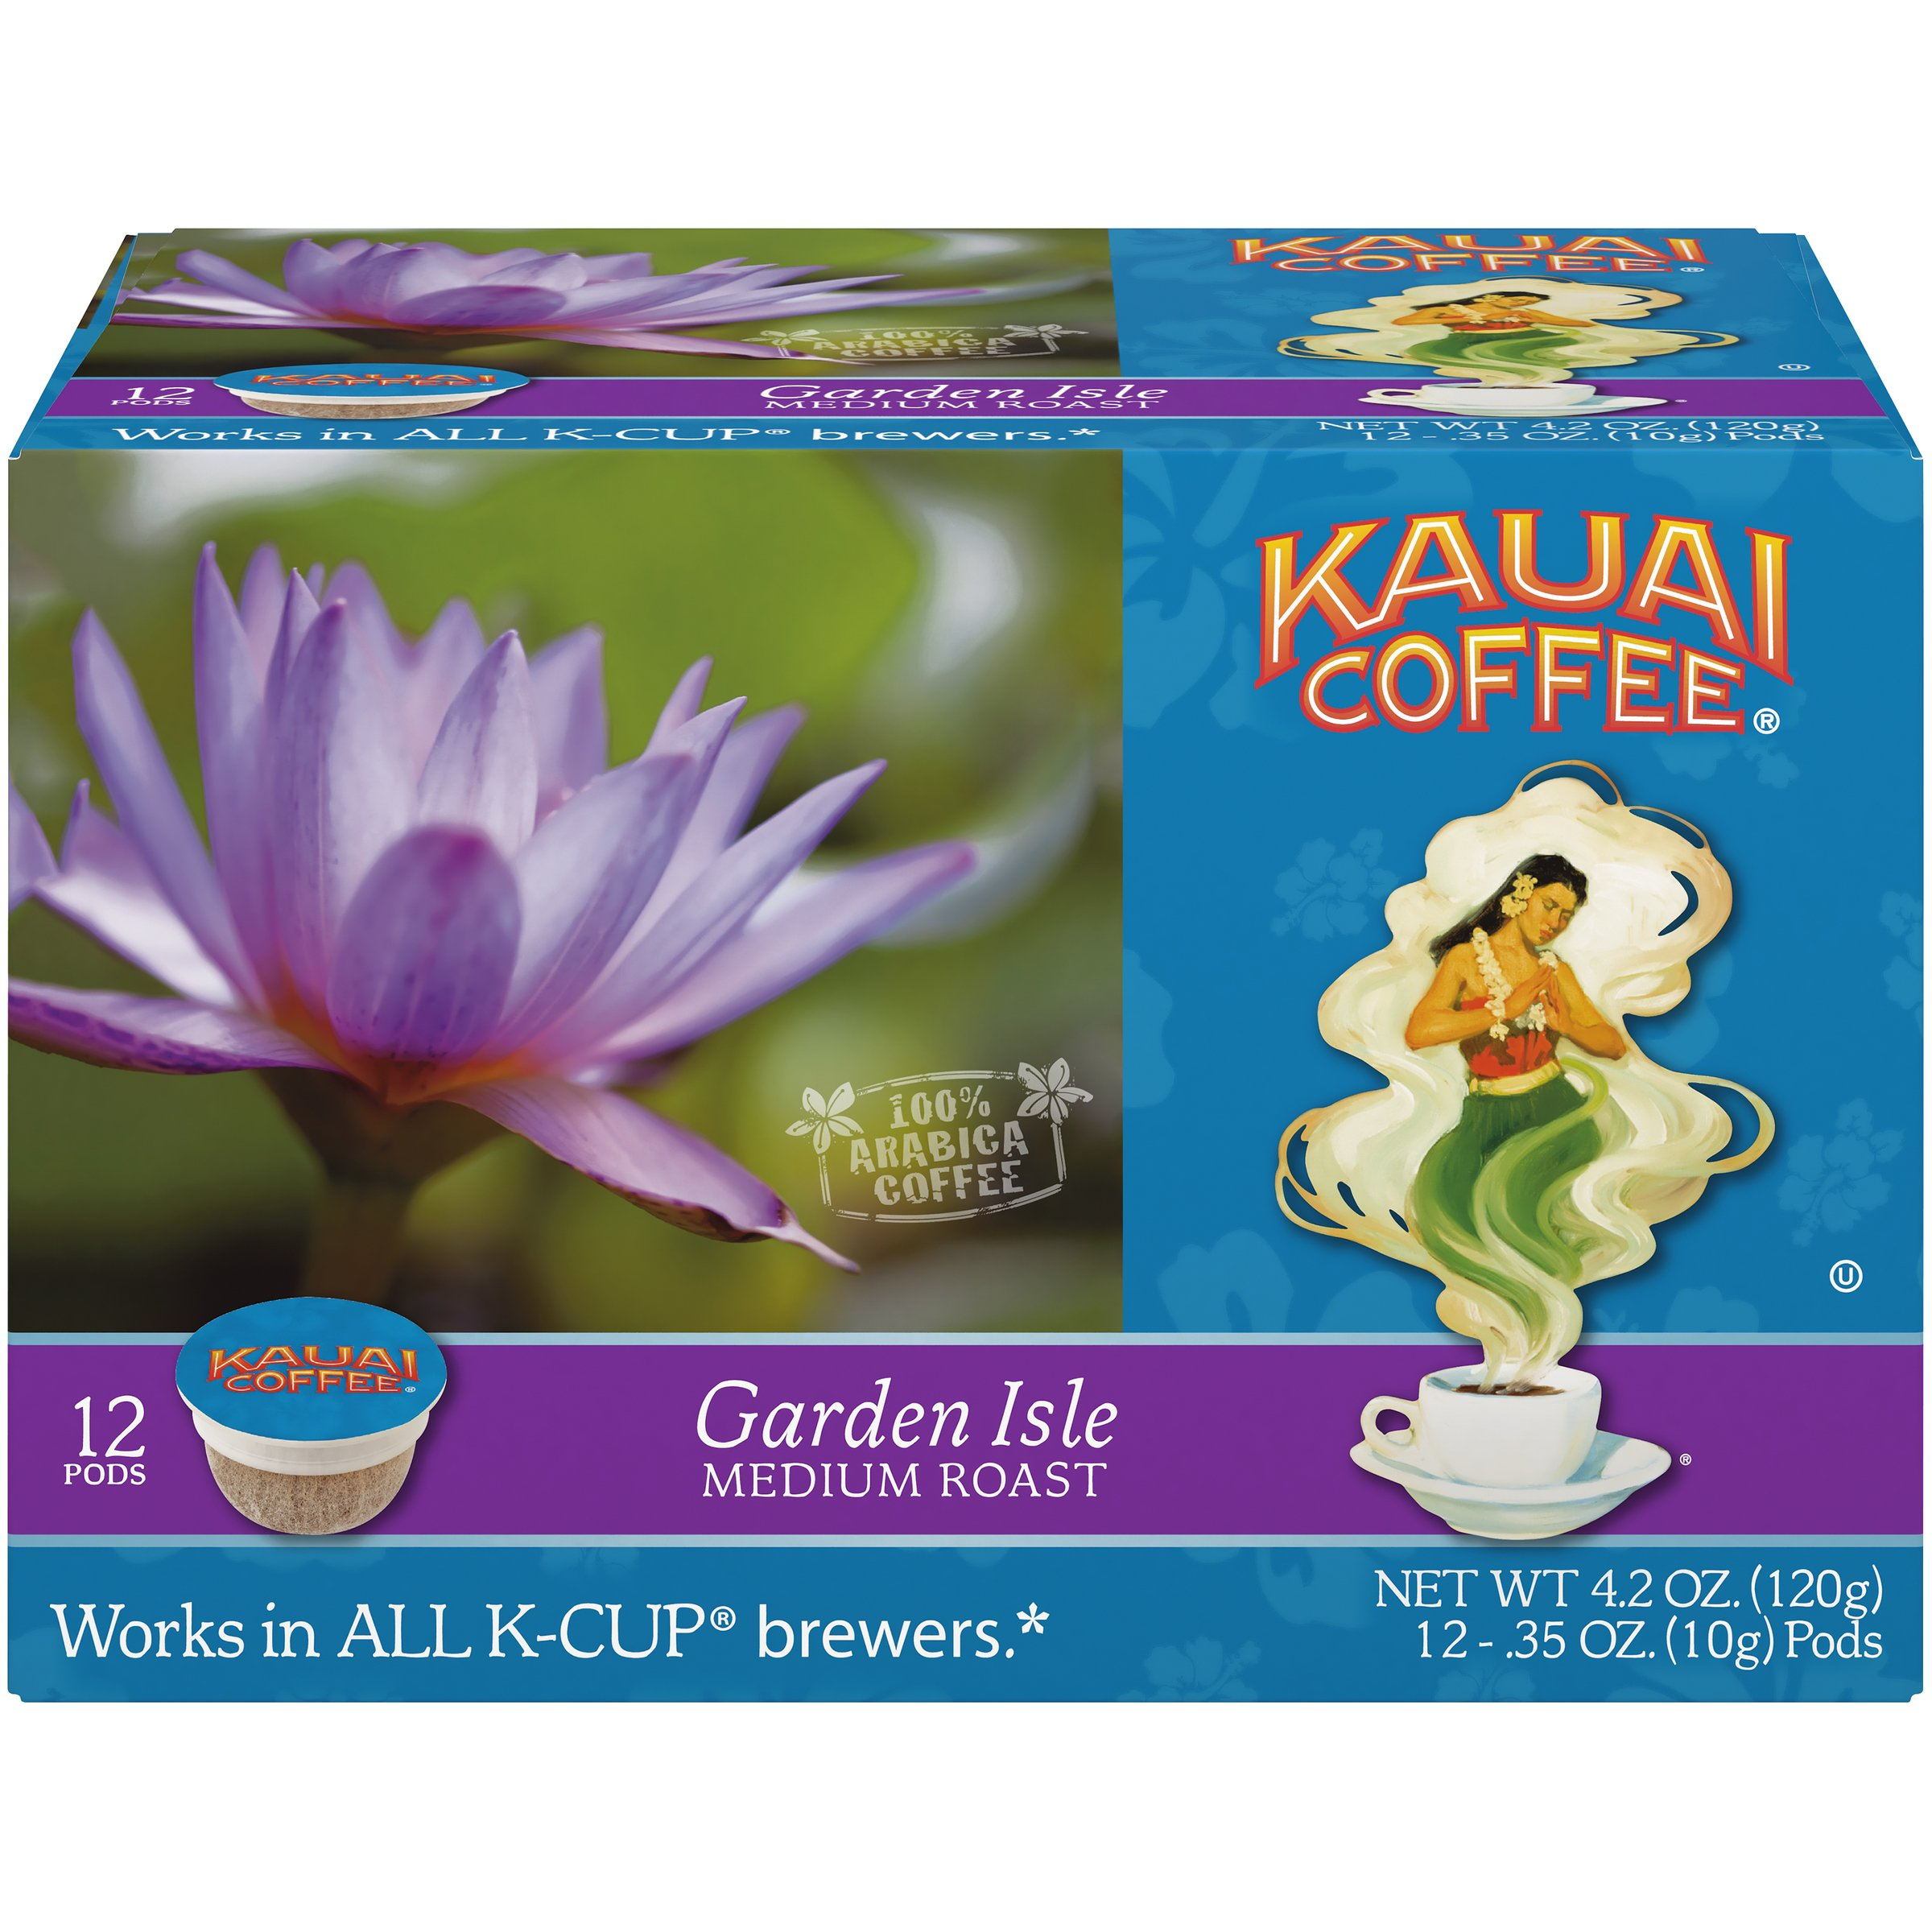 Kauai Coffee Single-serve Pods, Garden Isle Medium Roast - 100% Premium Arabica Coffee from Hawaii's Largest Coffee Grower, Compatible with Keurig K-Cup Brewers - 72 Count